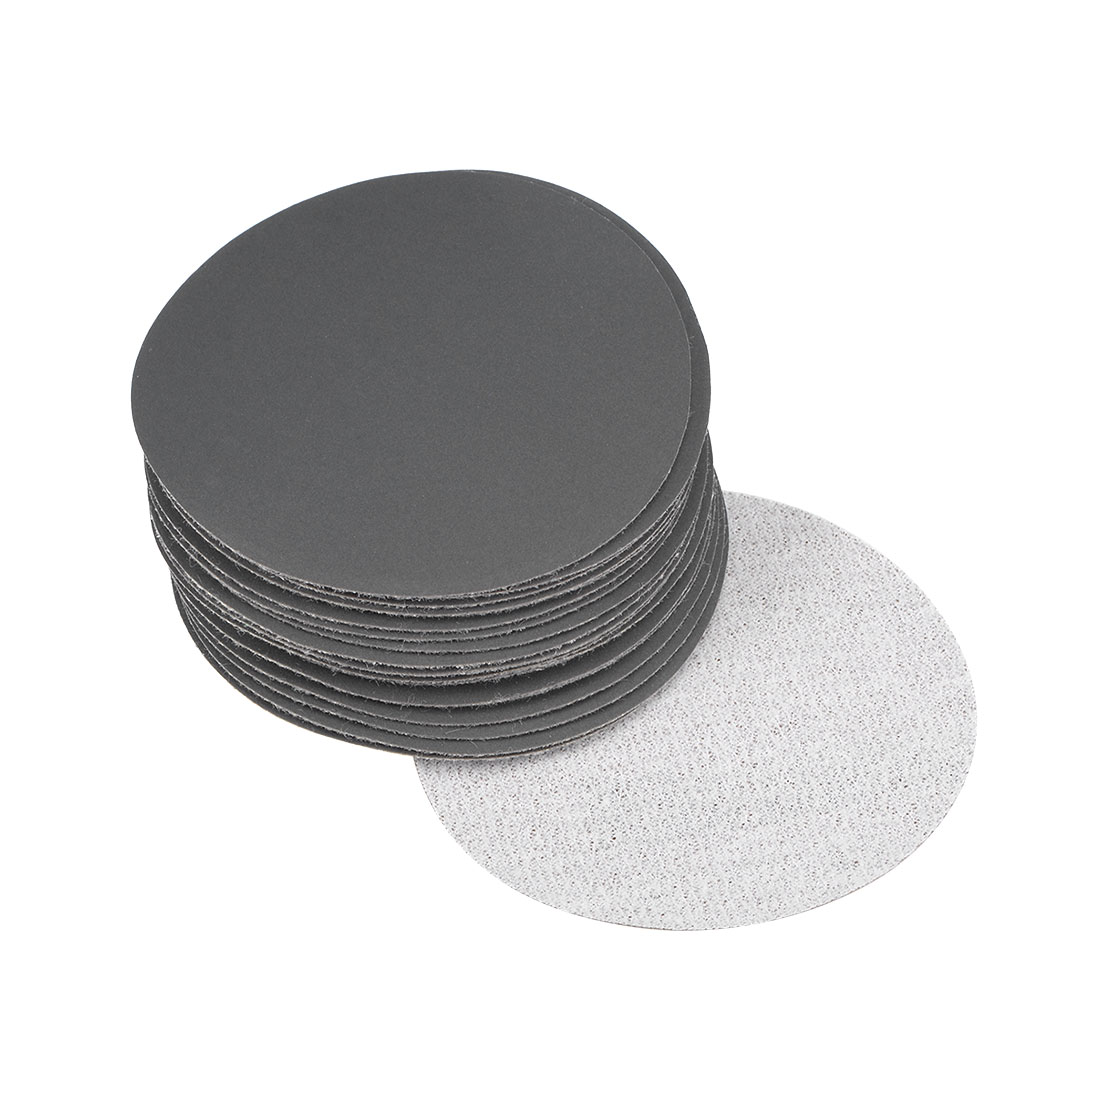 3 inch Wet Dry Discs 1200 Grit Hook and Loop Sanding Disc Silicon Carbide 20pcs